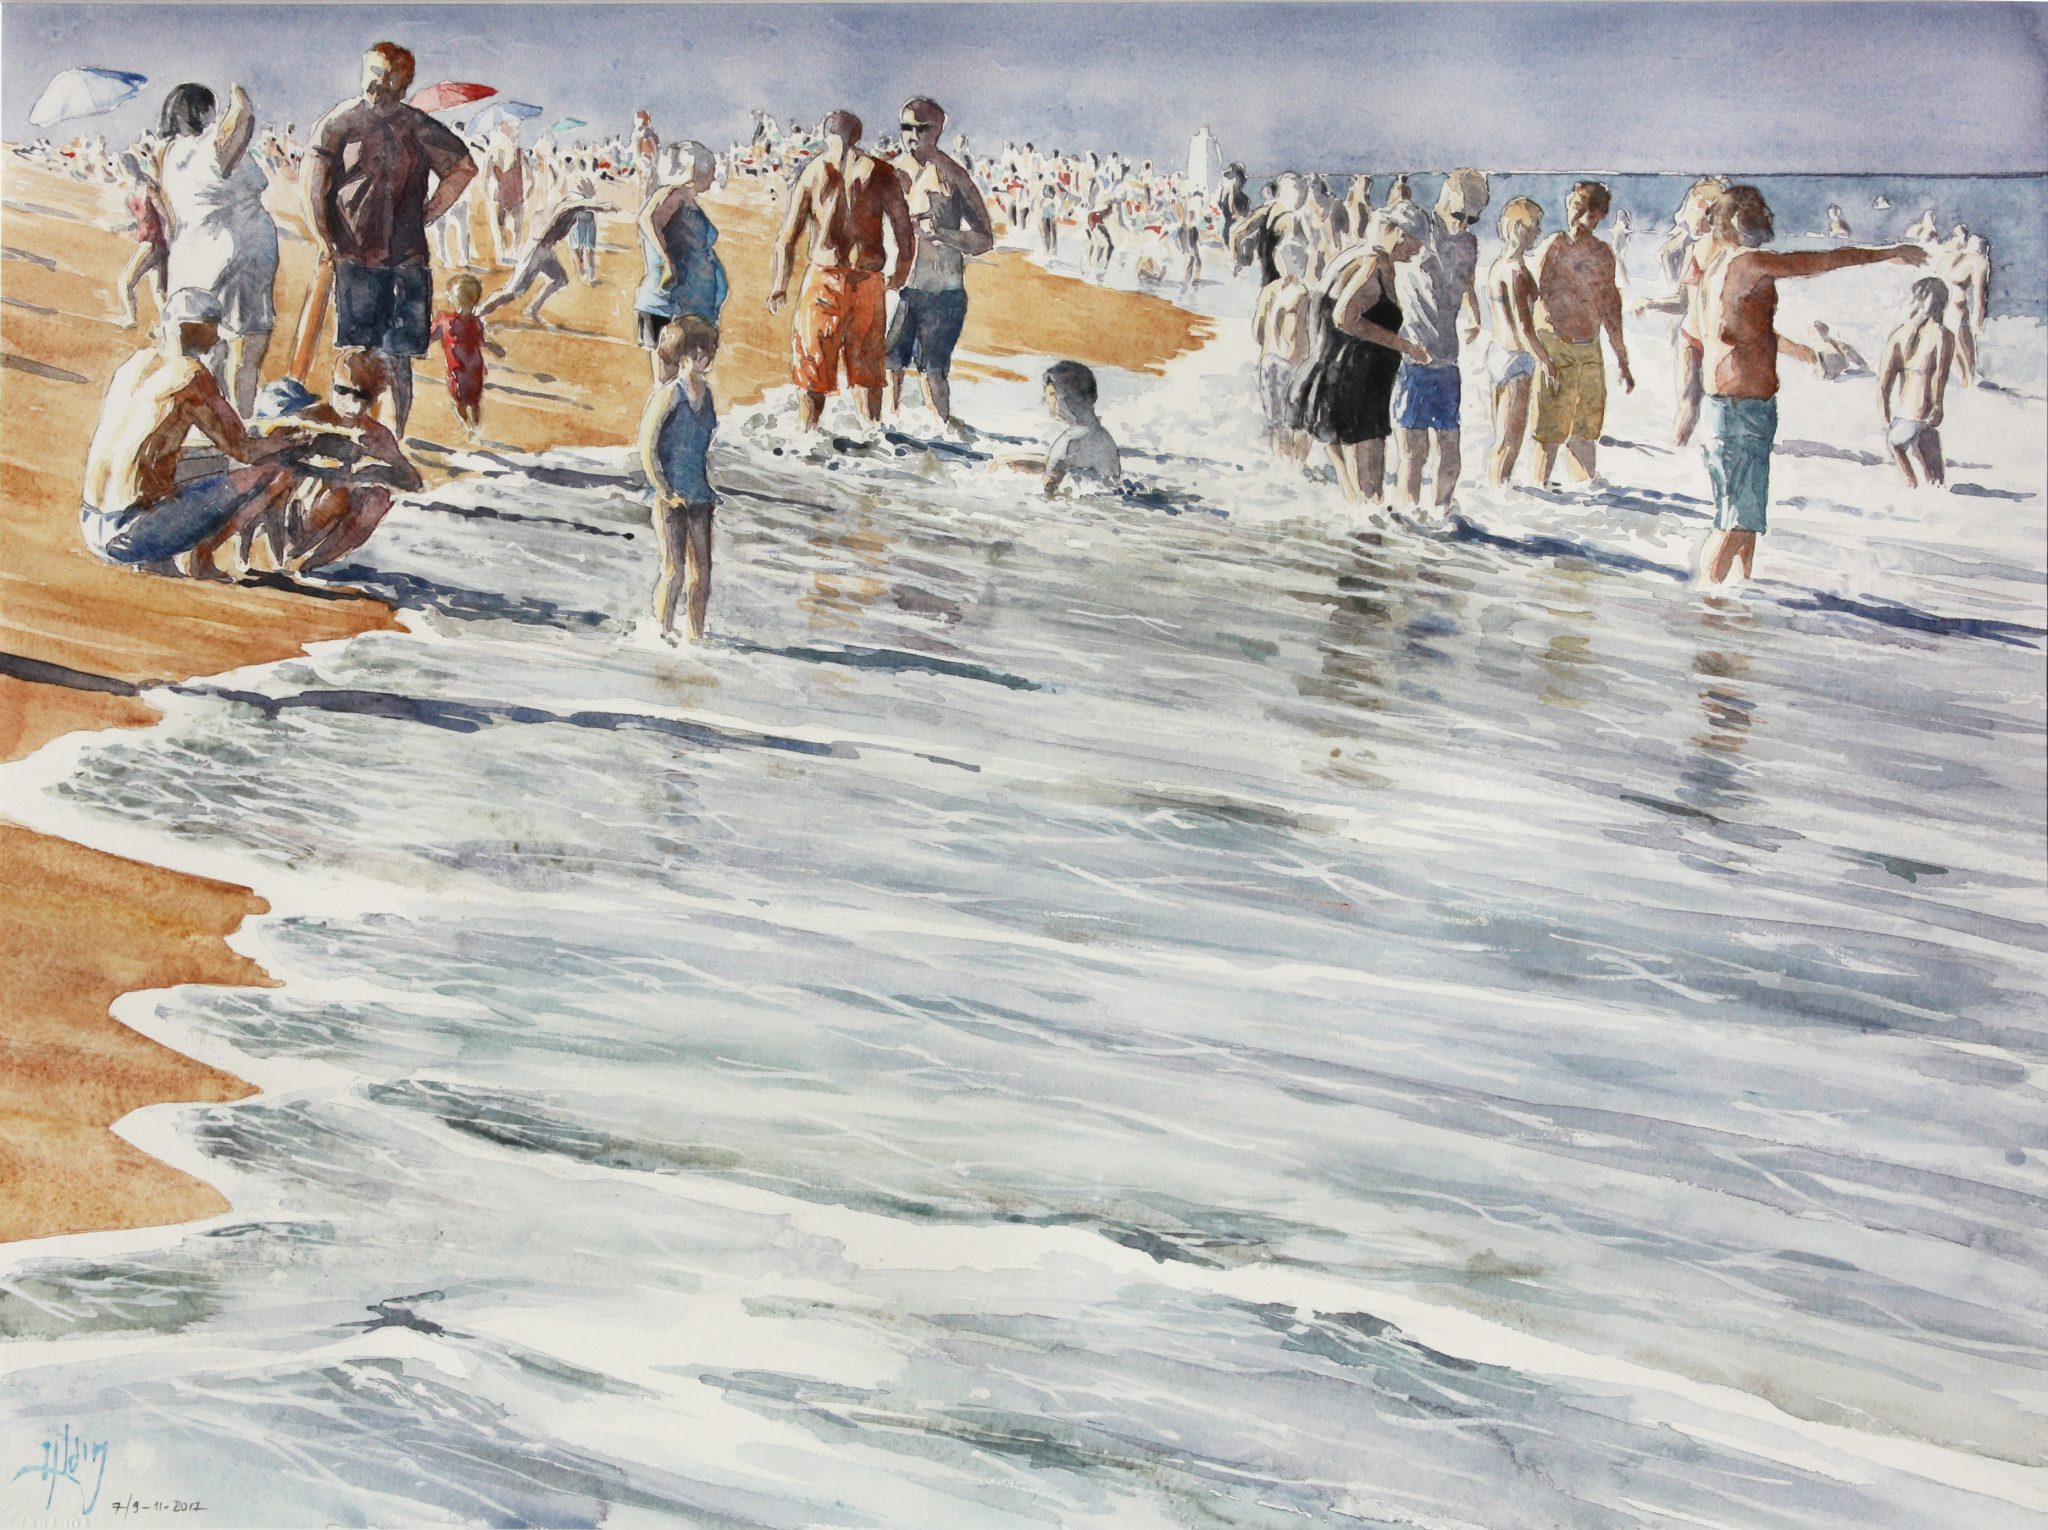 Plage de Chincoteague - 56x76cm